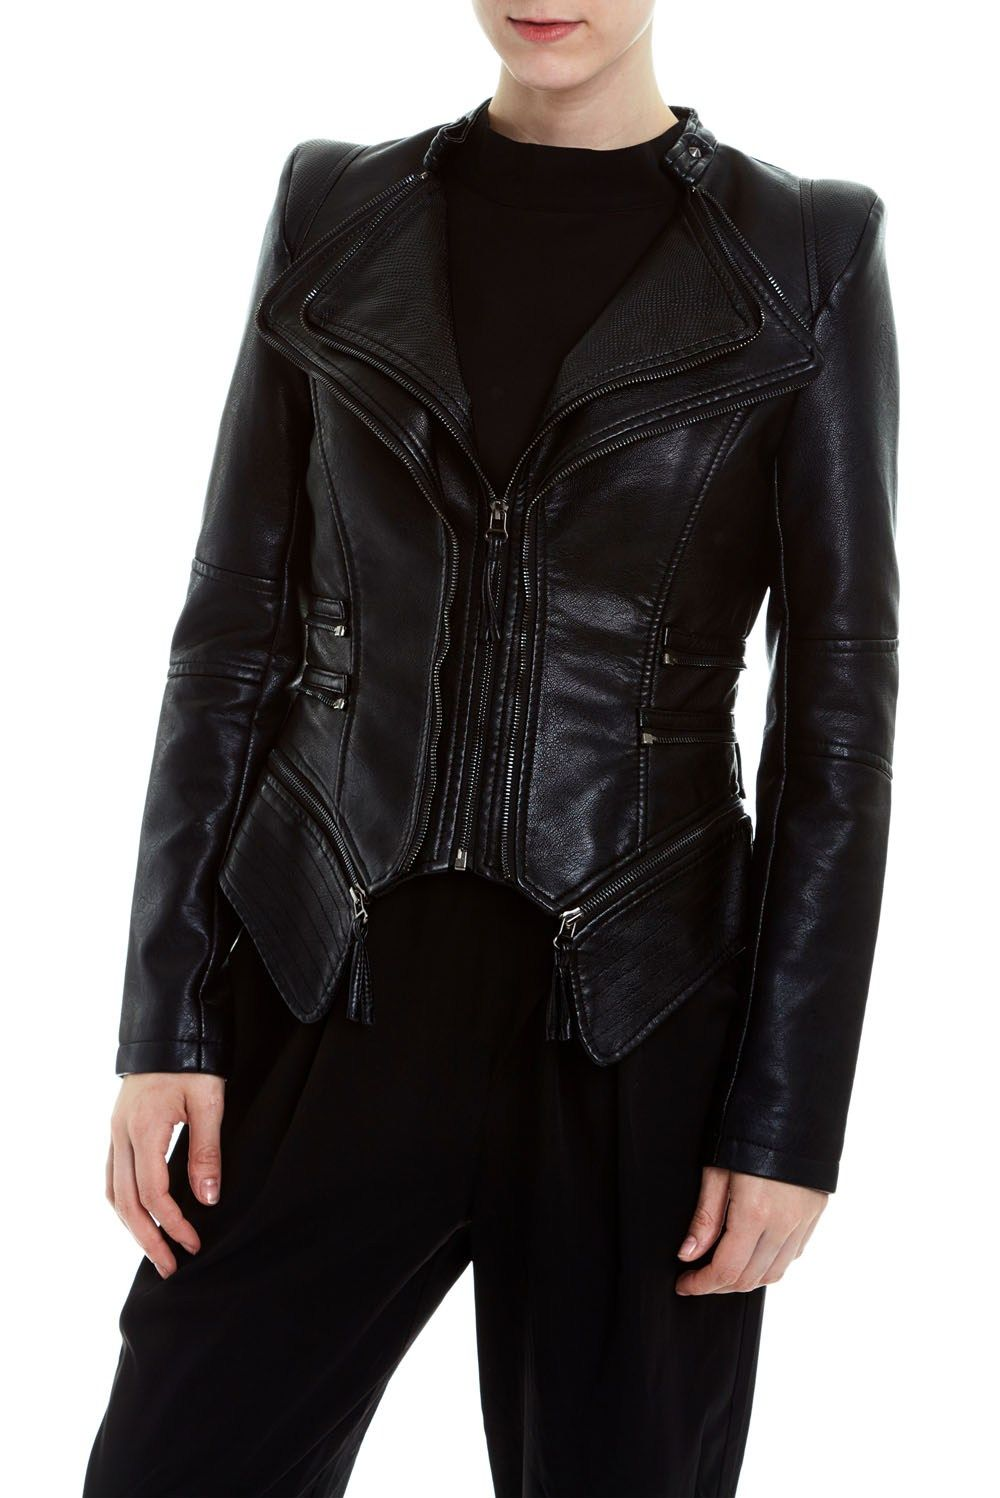 Double Zip Detail Jacket Jackets, Faux leather jackets